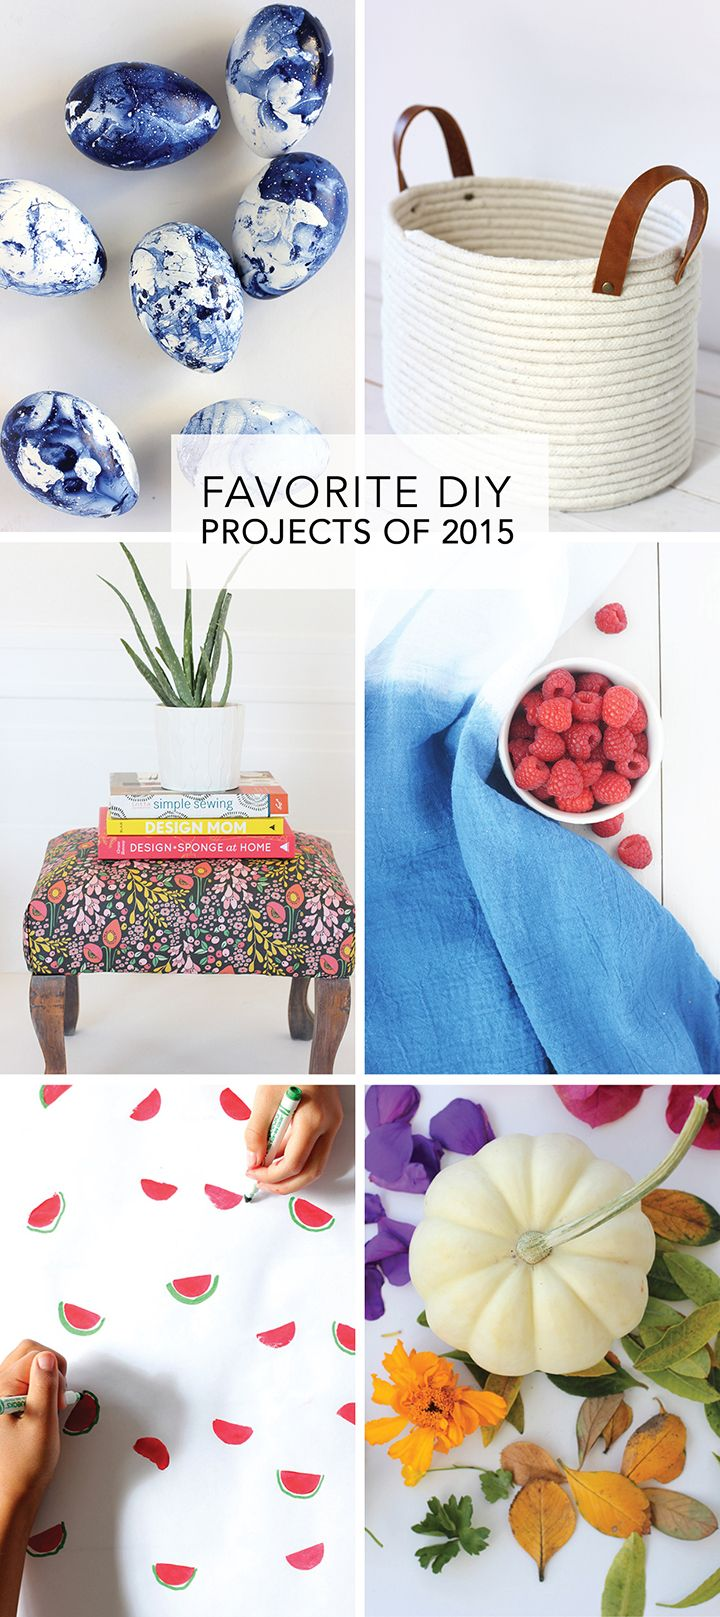 Top DIY Projects of the Year from Alice & Lois.